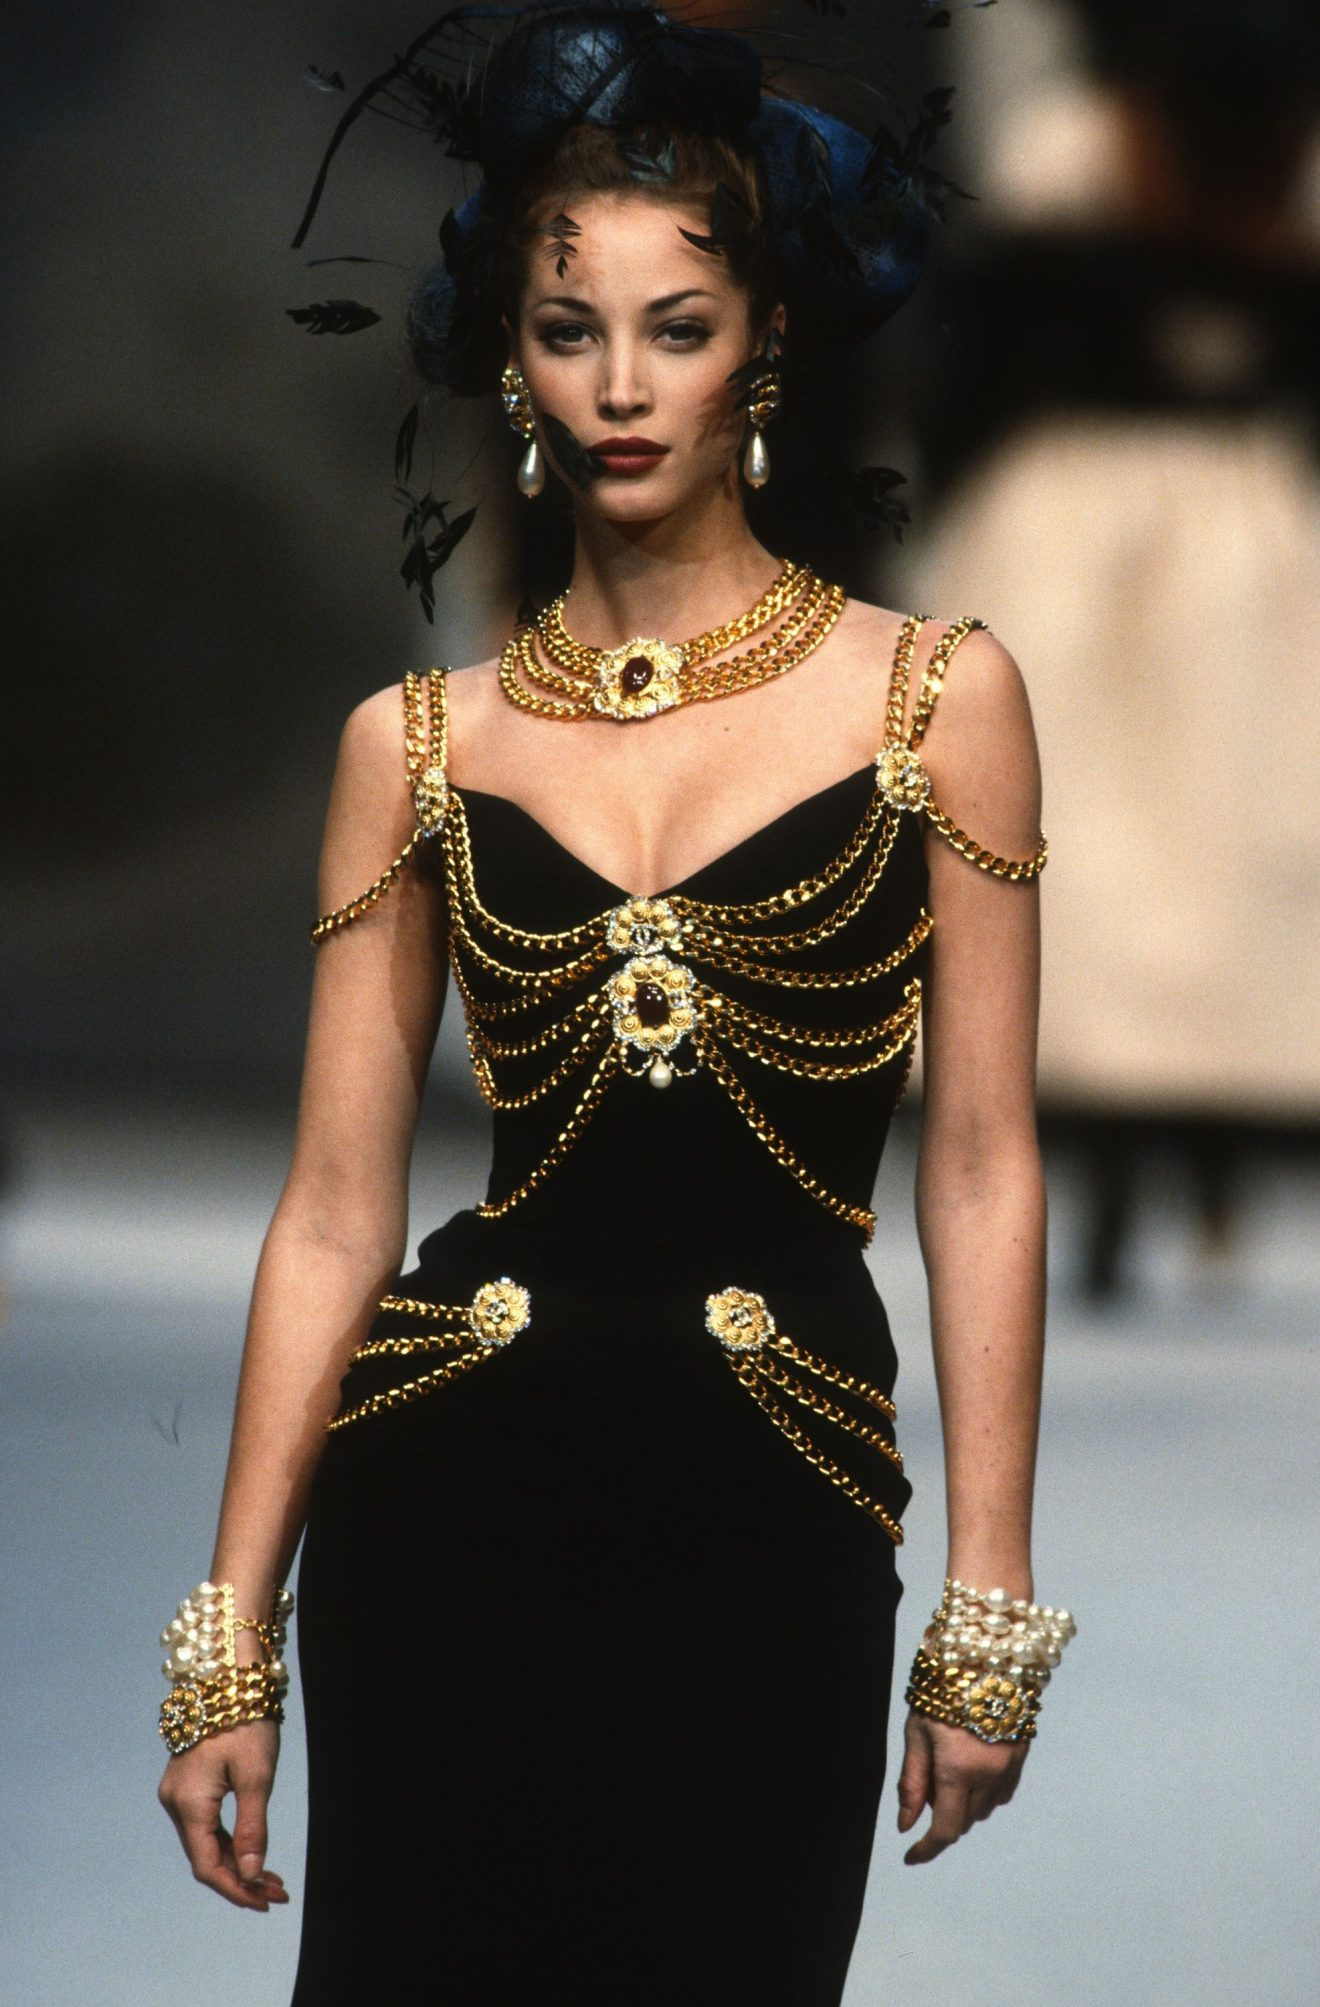 CHANEL Christy Turlington haute couture printemps-été 1992-1993 Esprit de Gabrielle espritdegabrielle.com